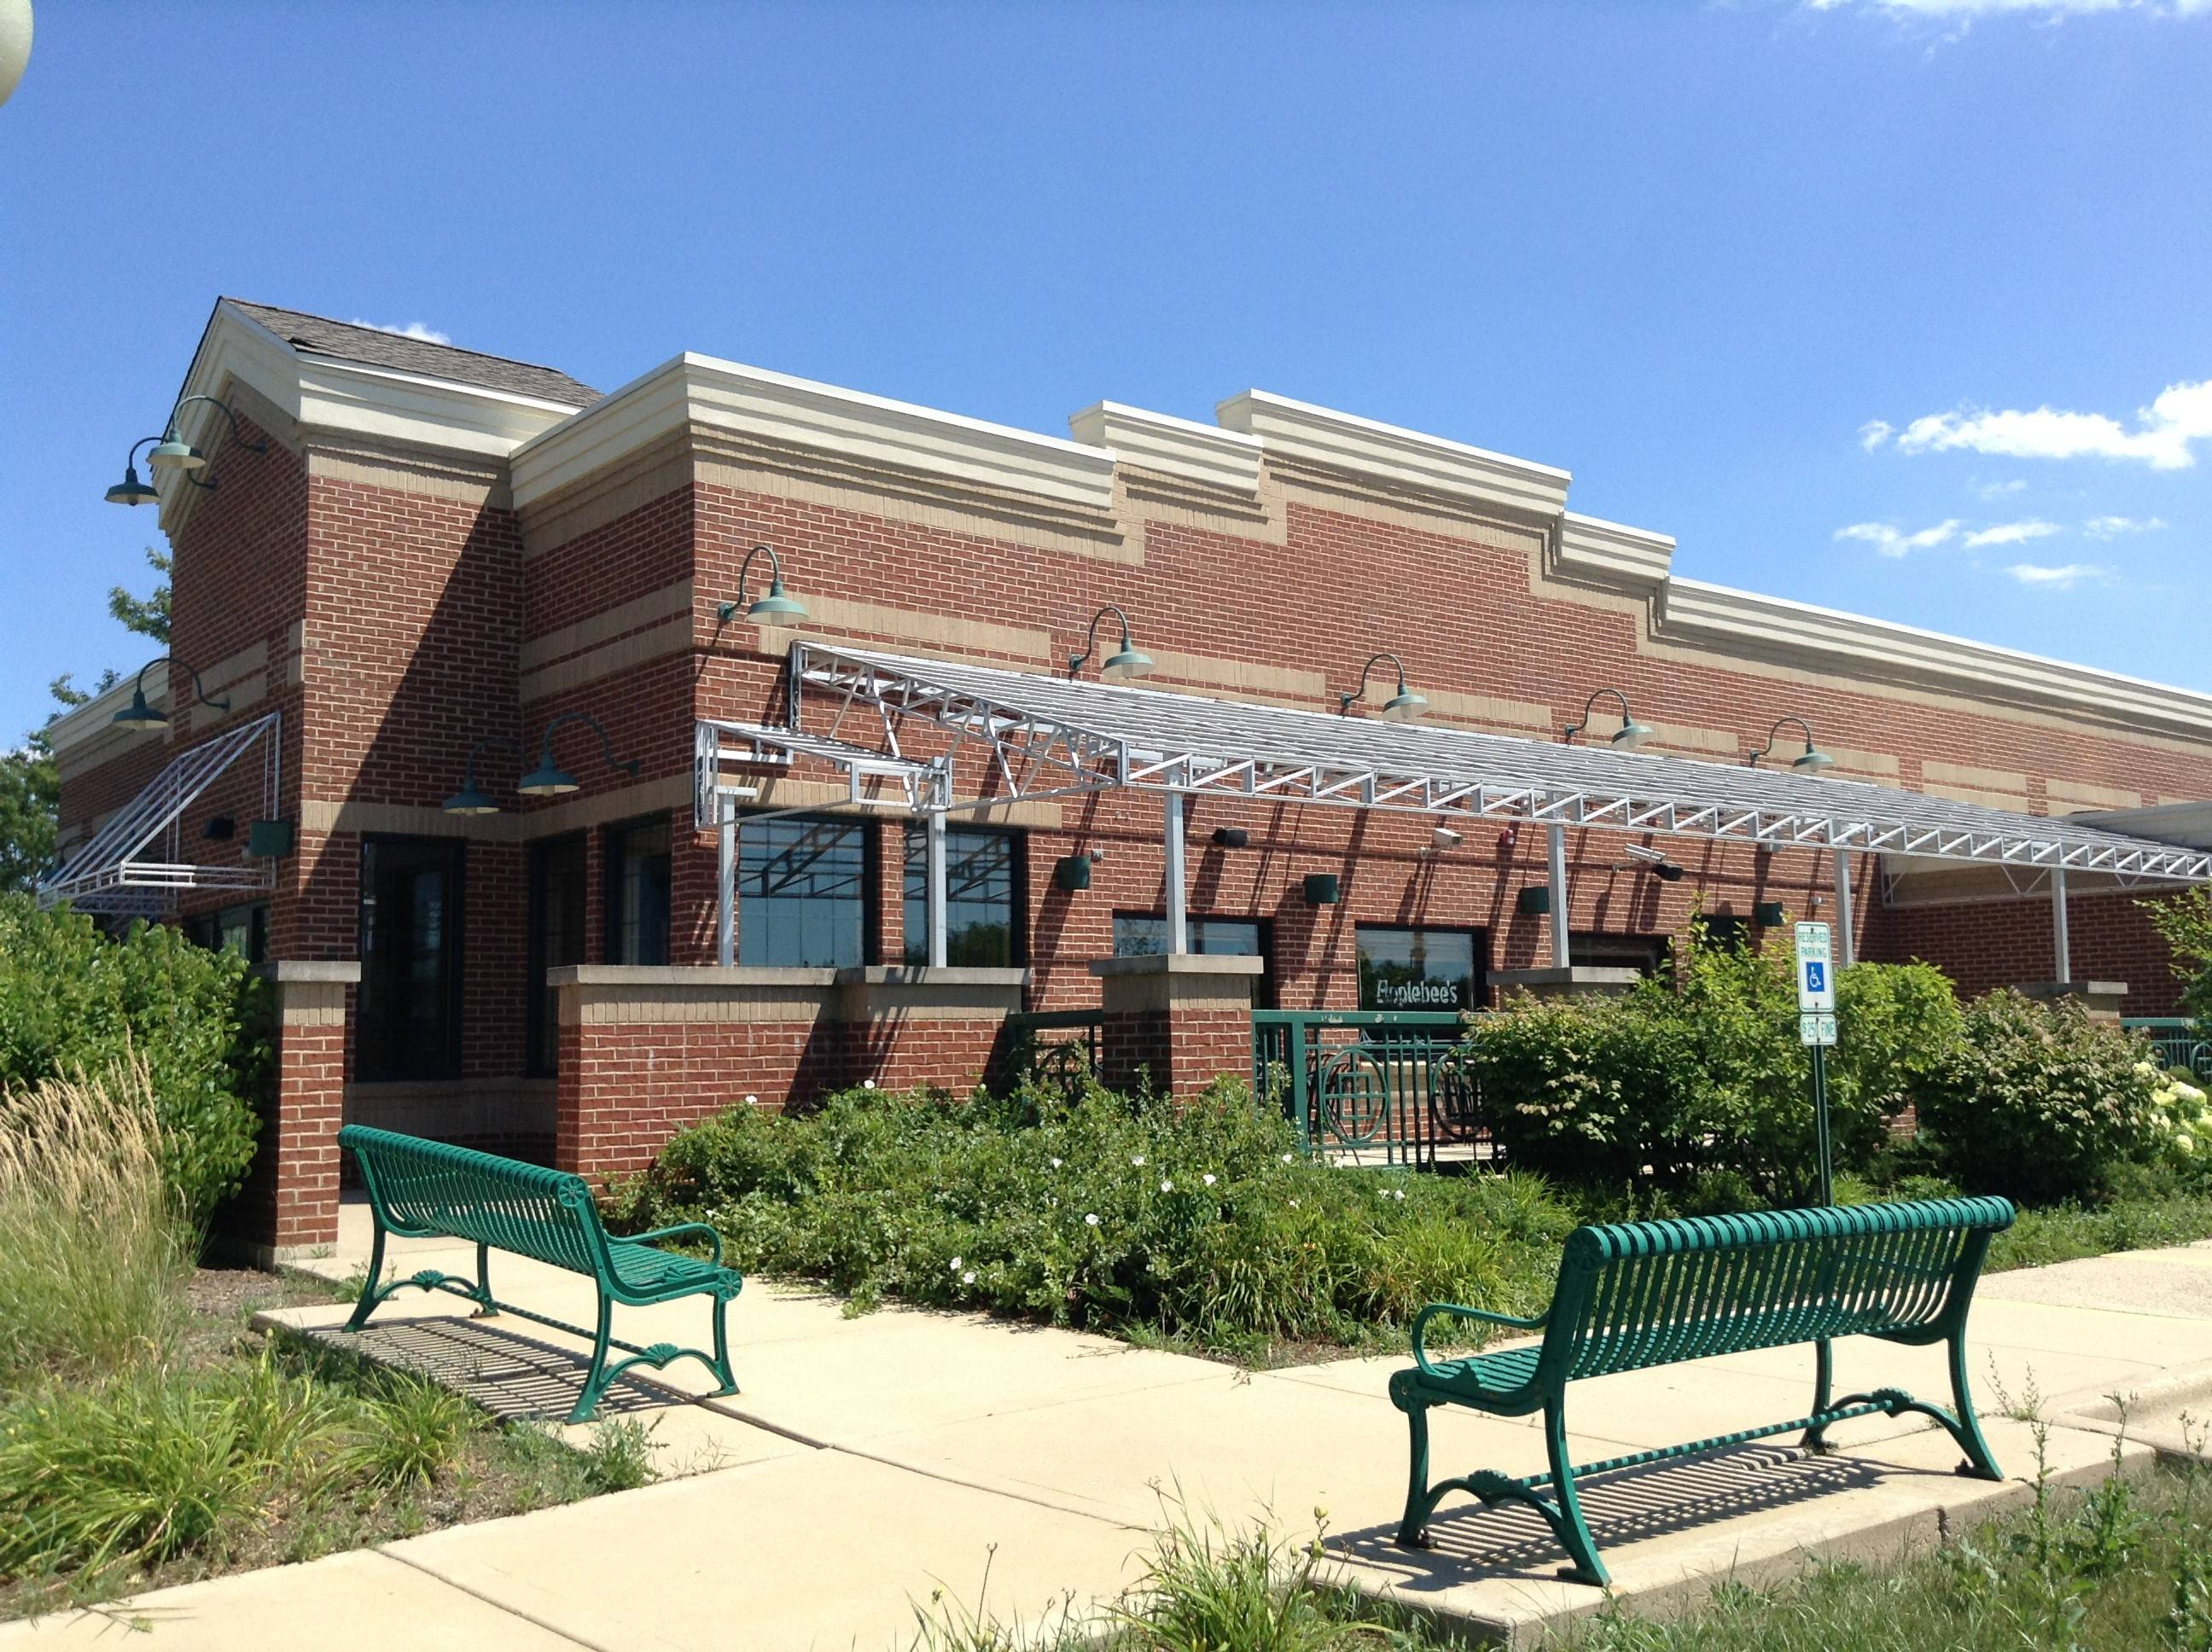 A new Walker Bros., The Original Pancake House, is expected to open in September in the former Applebee's building at 18 S. Roselle Road in Schaumburg's Town Square shopping center.